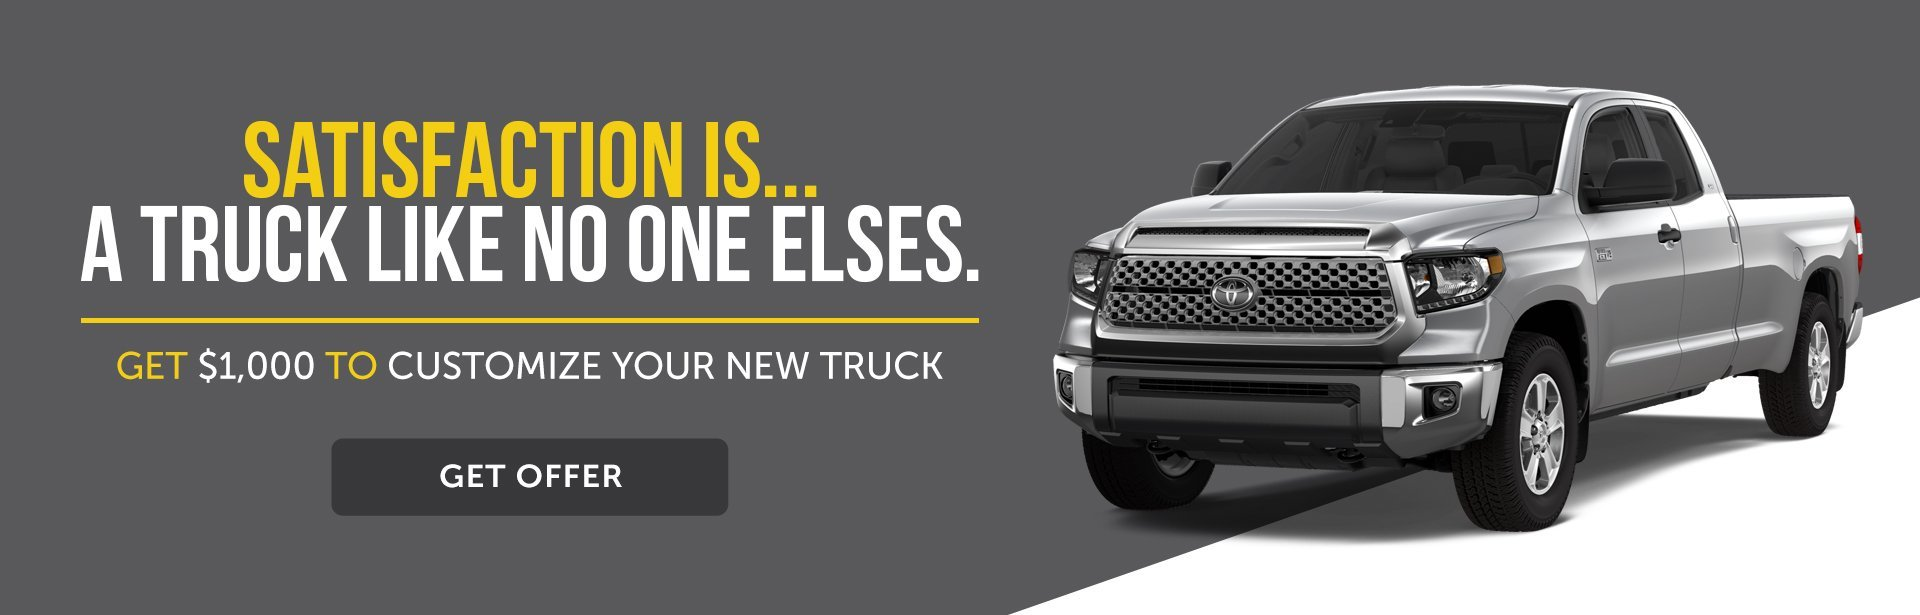 Customize your truck